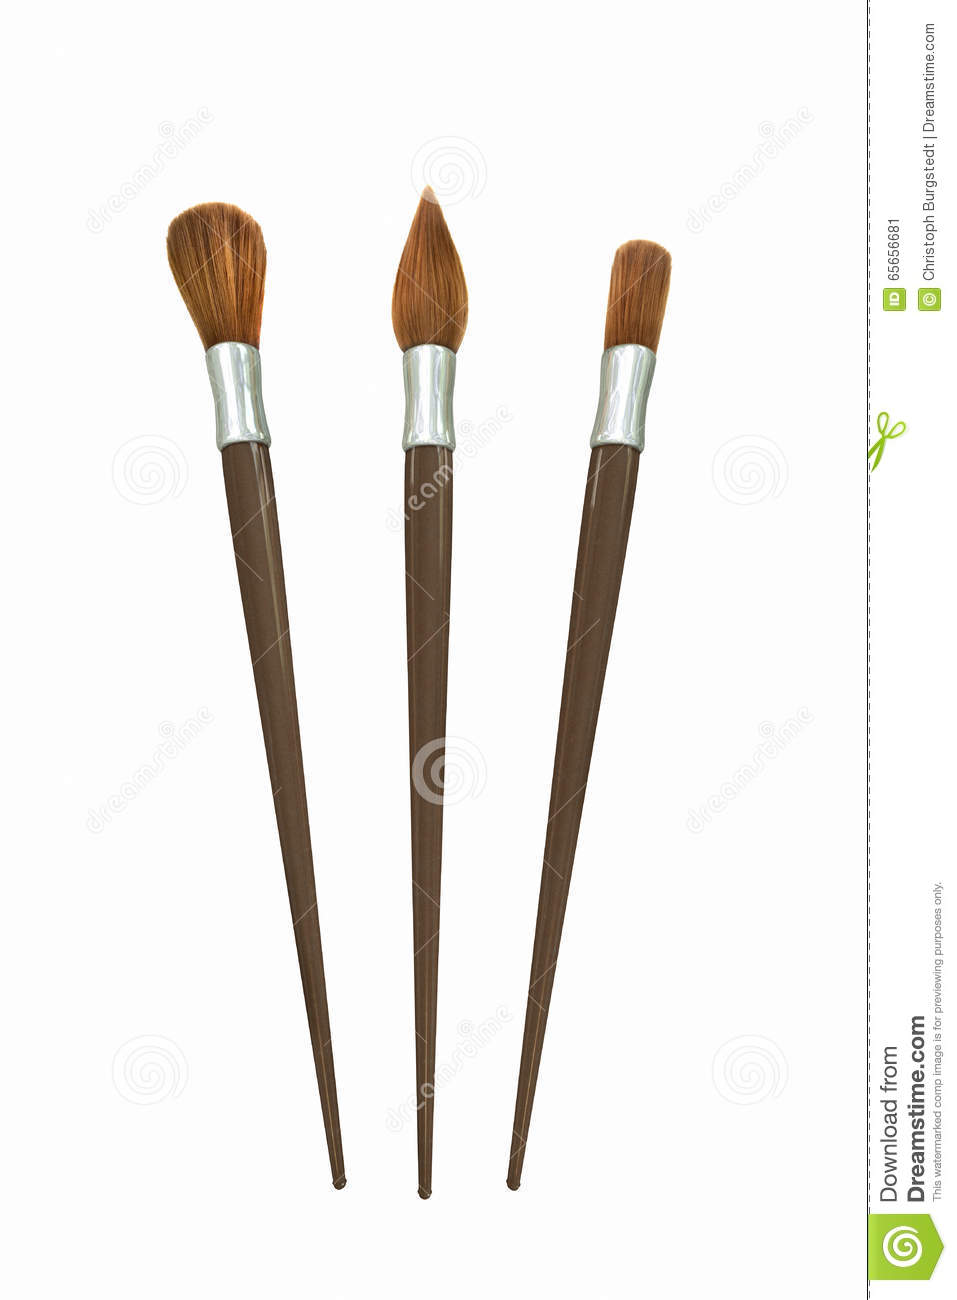 How To Clean The Oil Paint Brushes